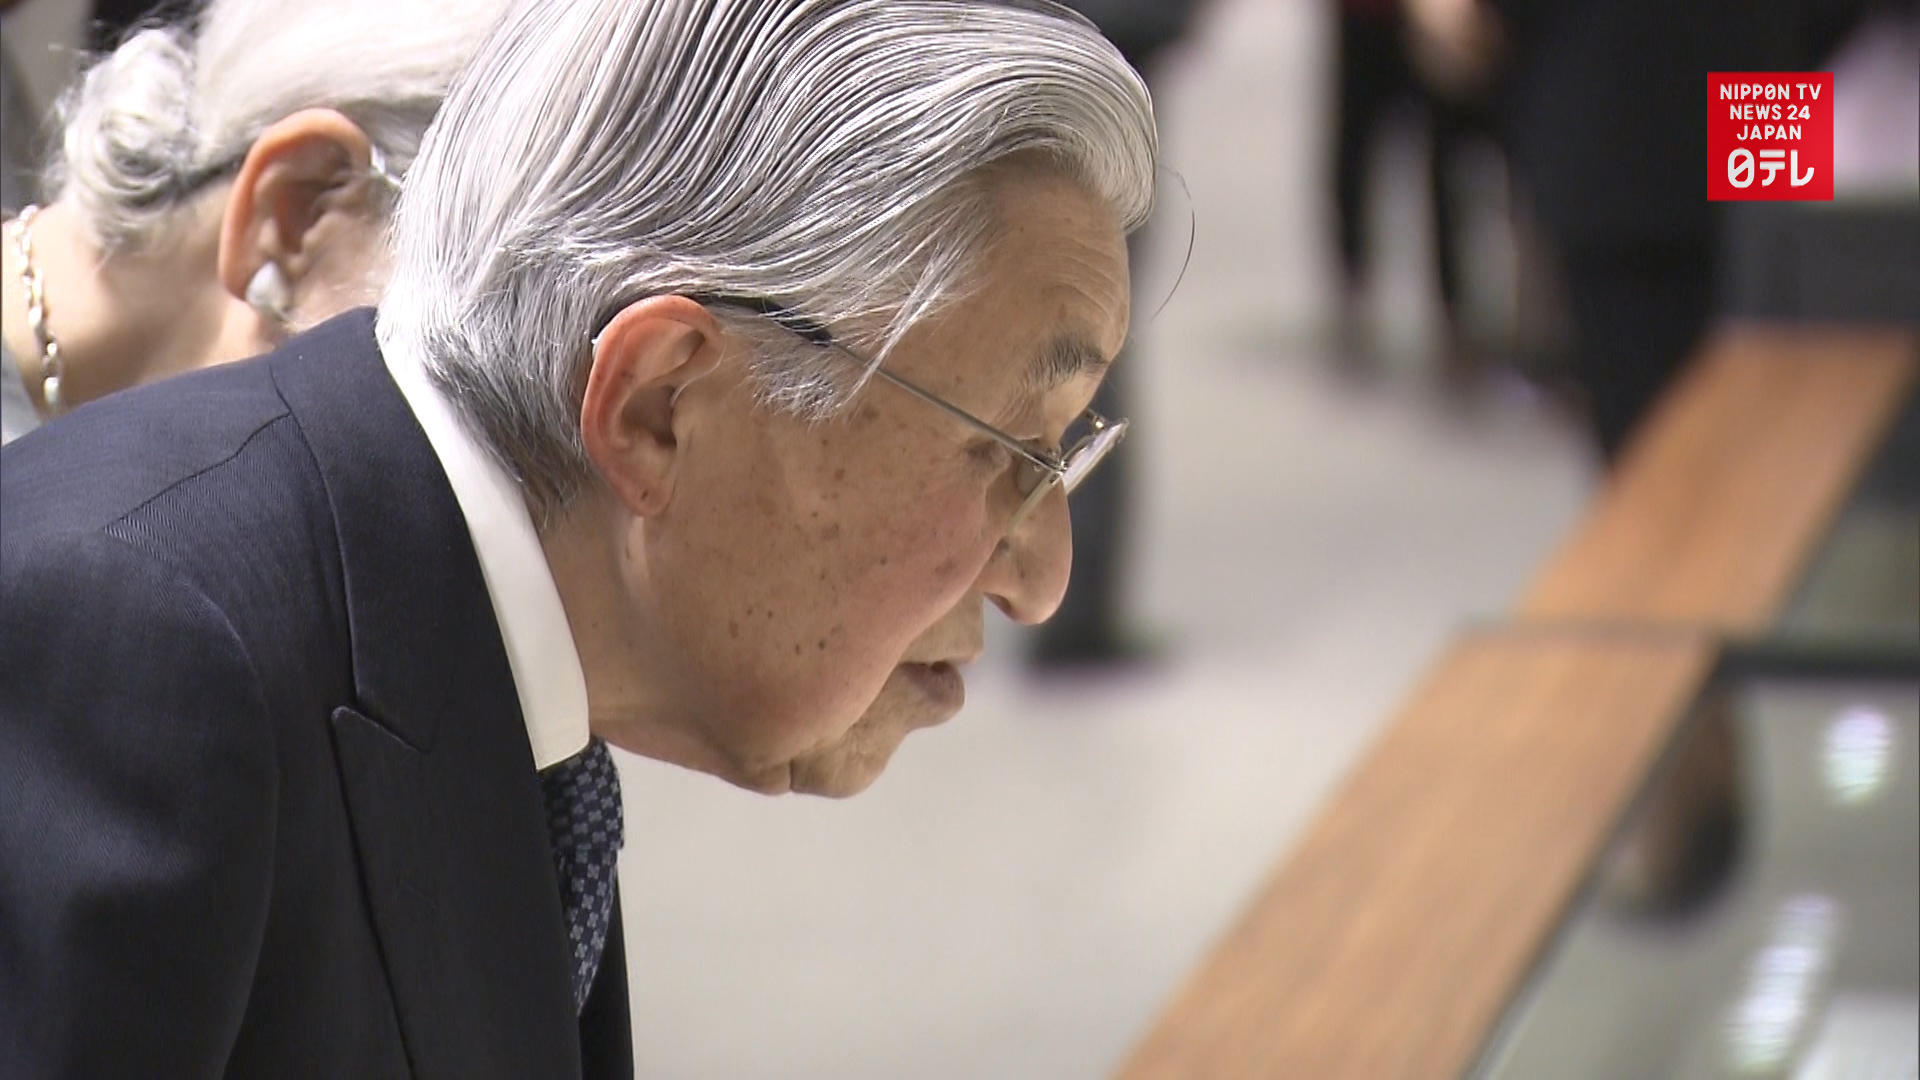 Emperor emeritus visits National Archives